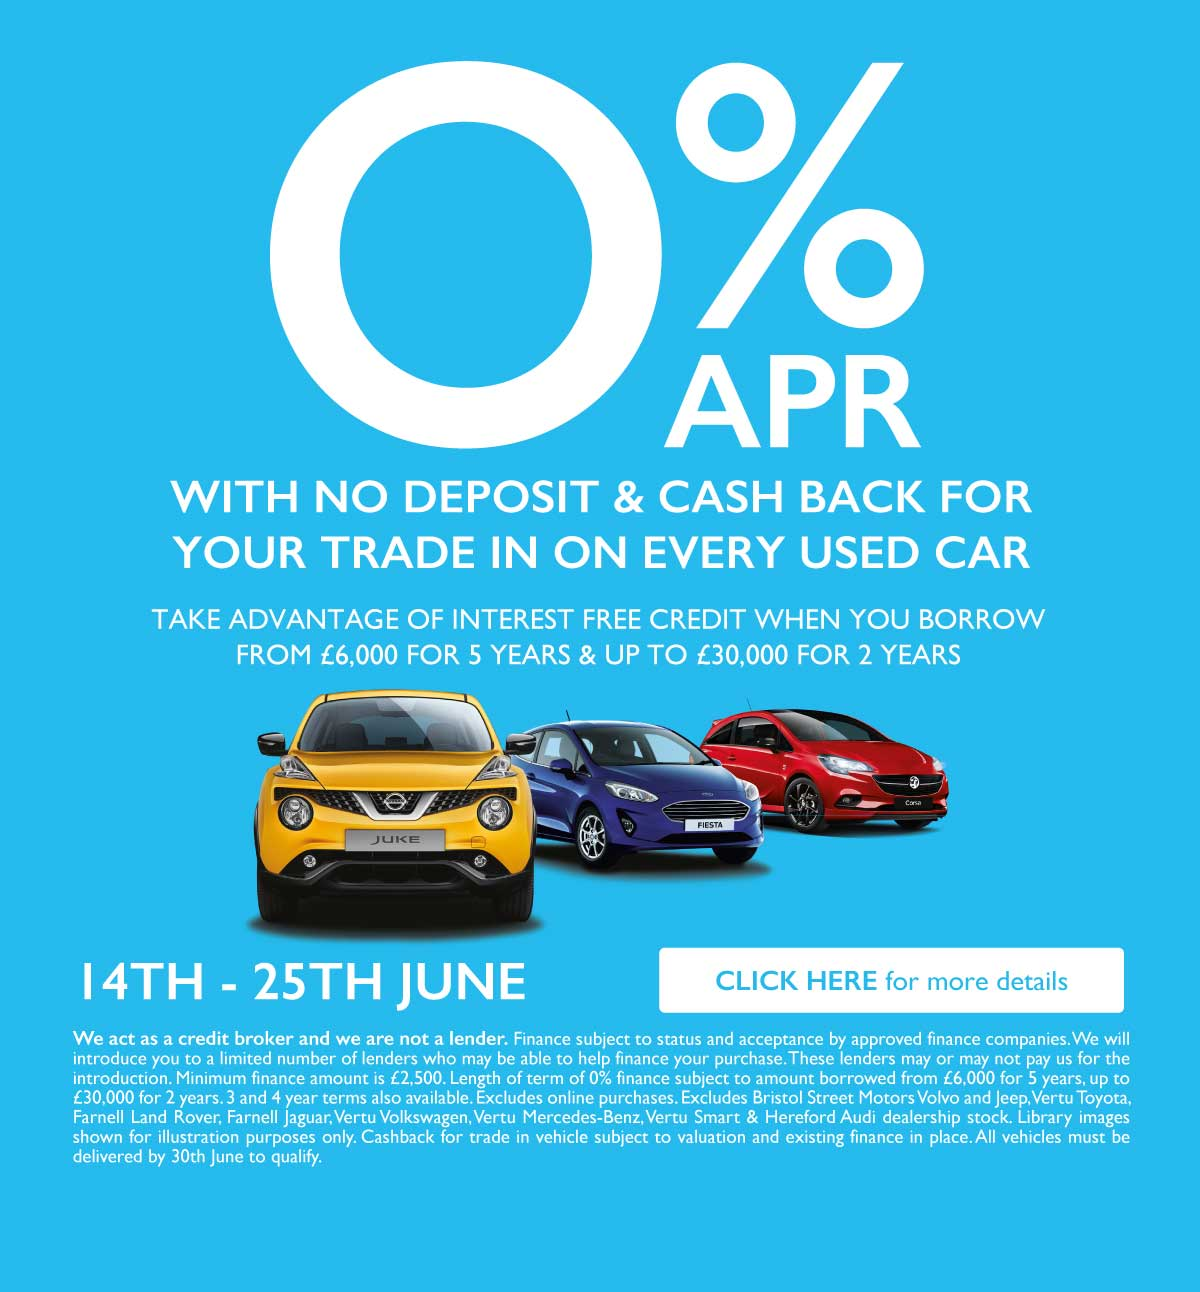 0% Used Car Event June 2019 - BSM Renault